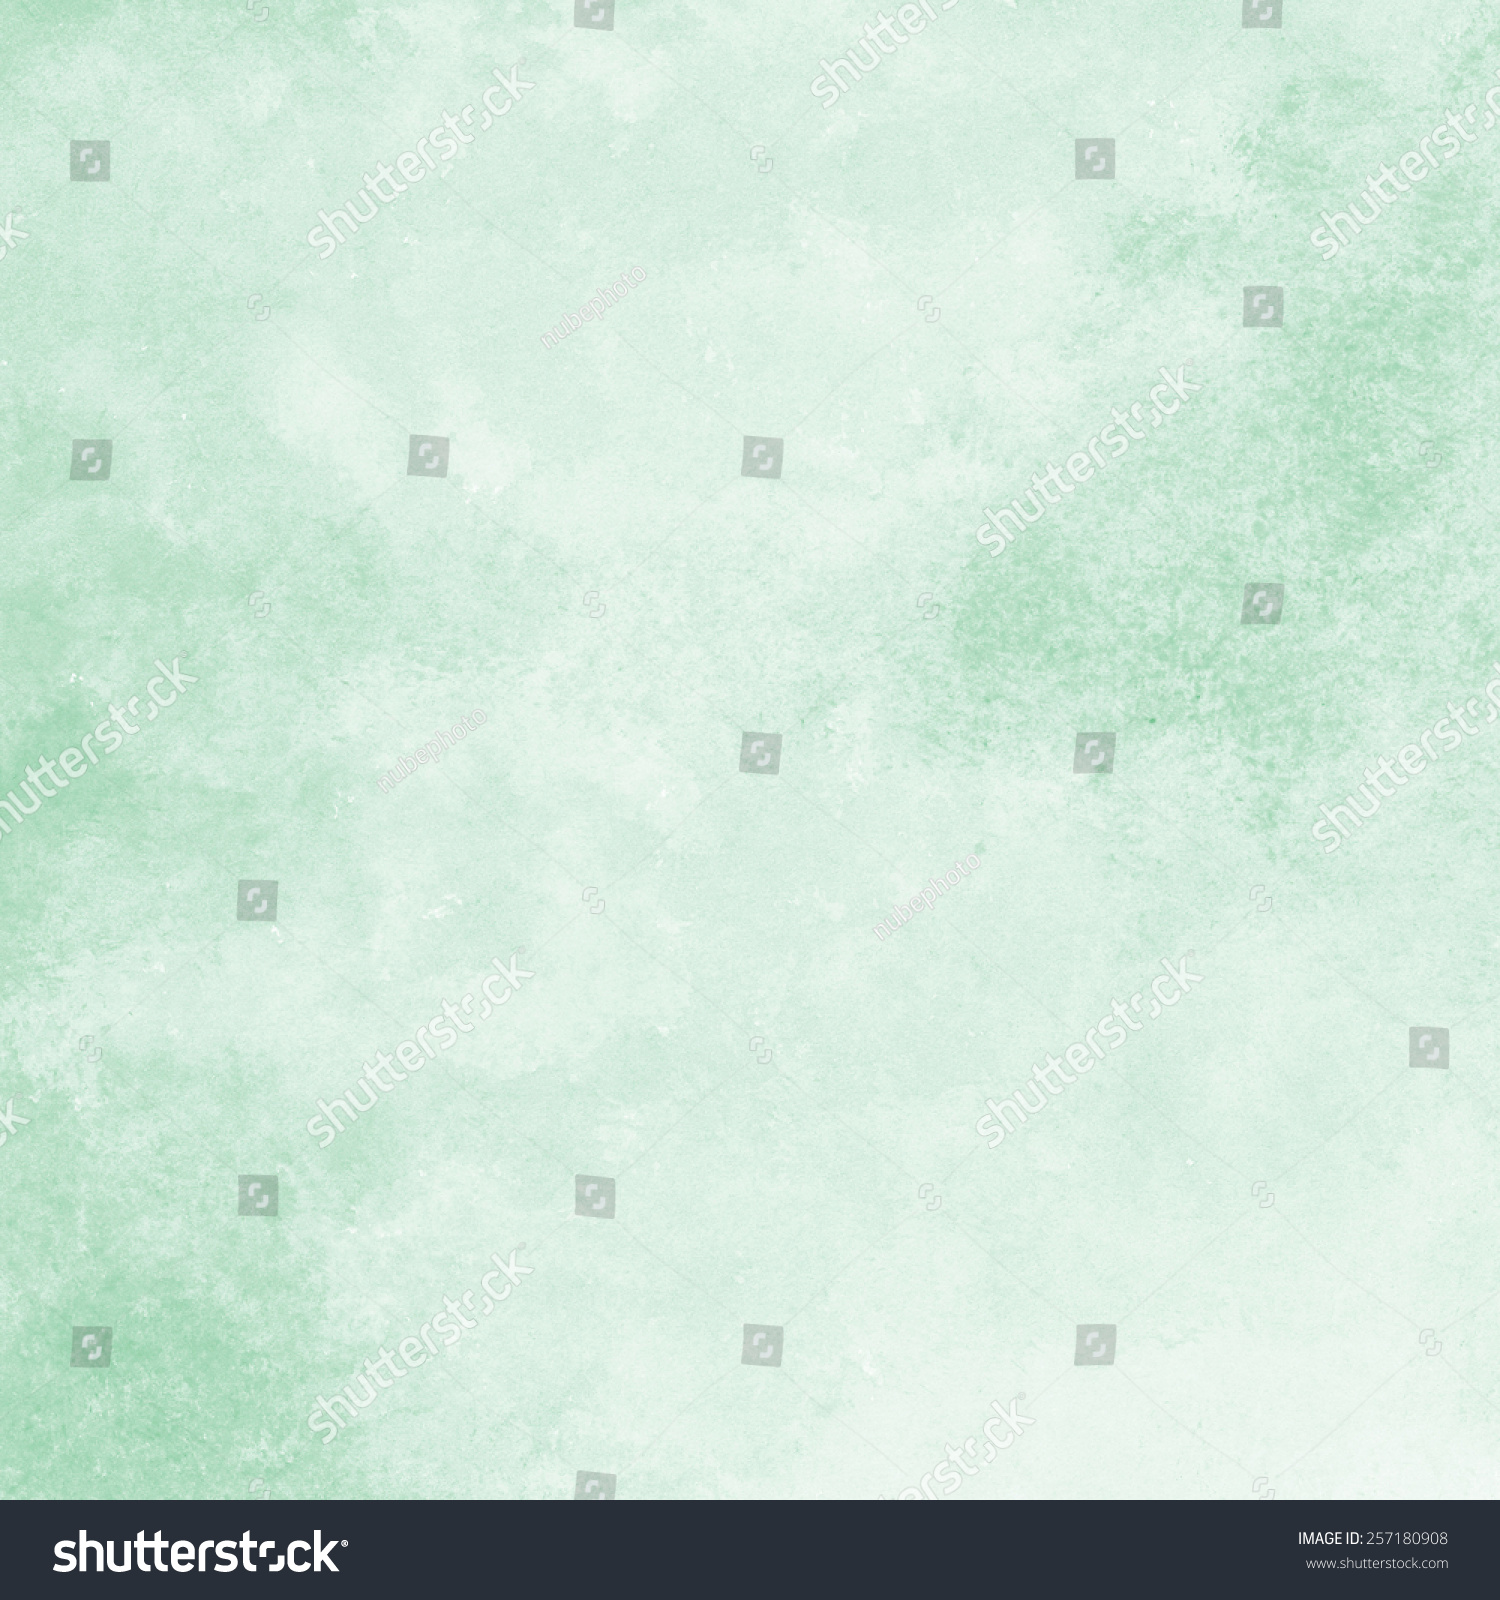 Mint green textured background